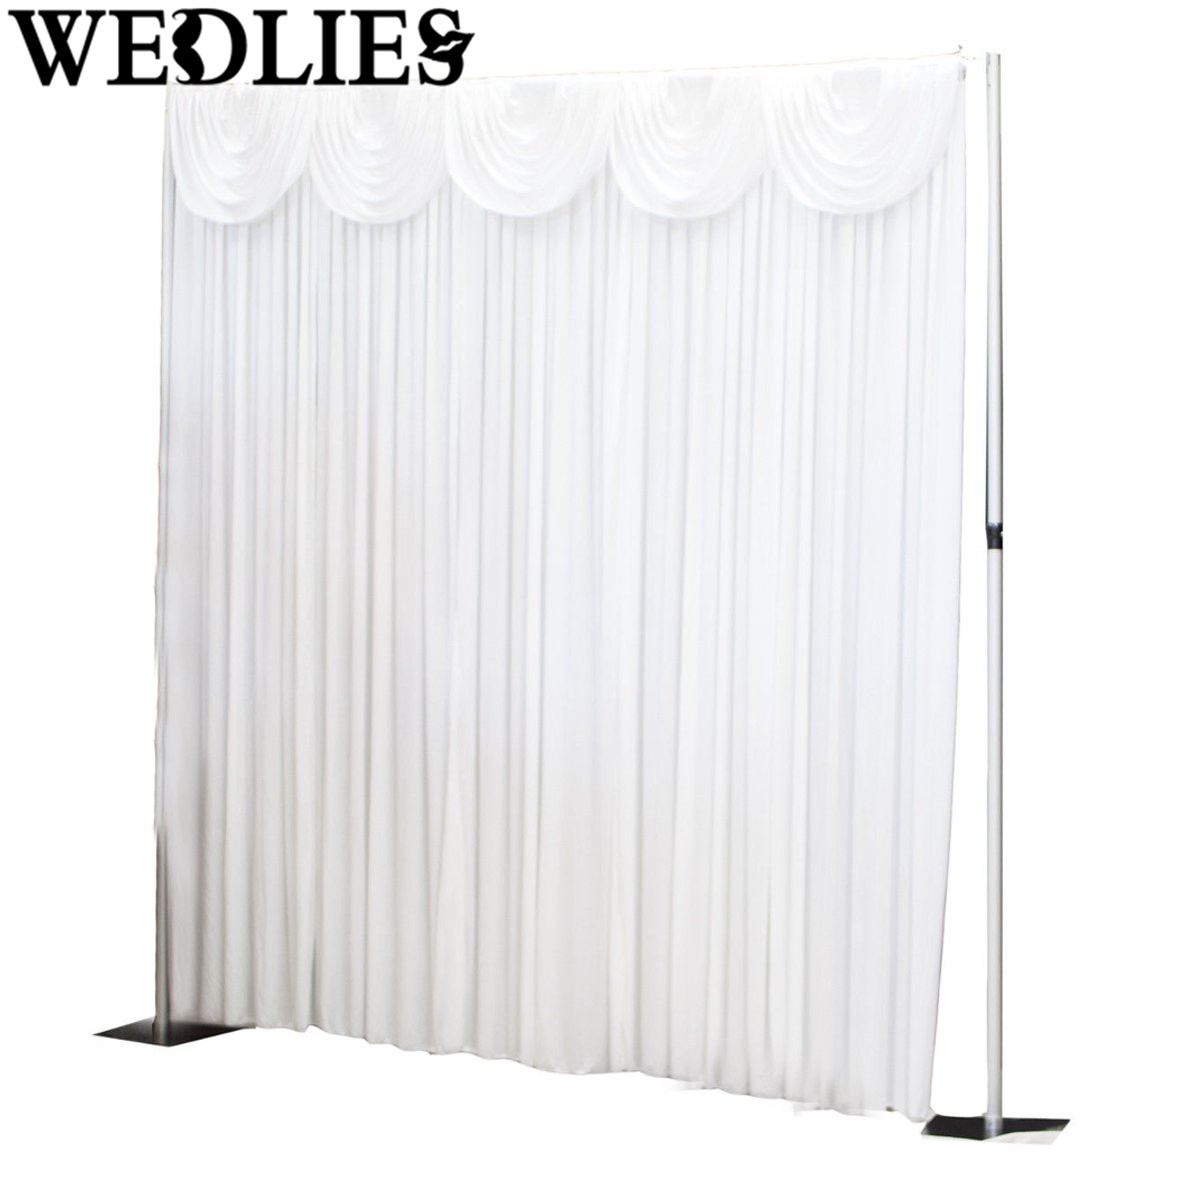 Black and white stage curtain - Download White Wedding Stage Backdrop Photography Background Drape Valance Curtain Pendant Wedding Party Events Decoration 300x300cm